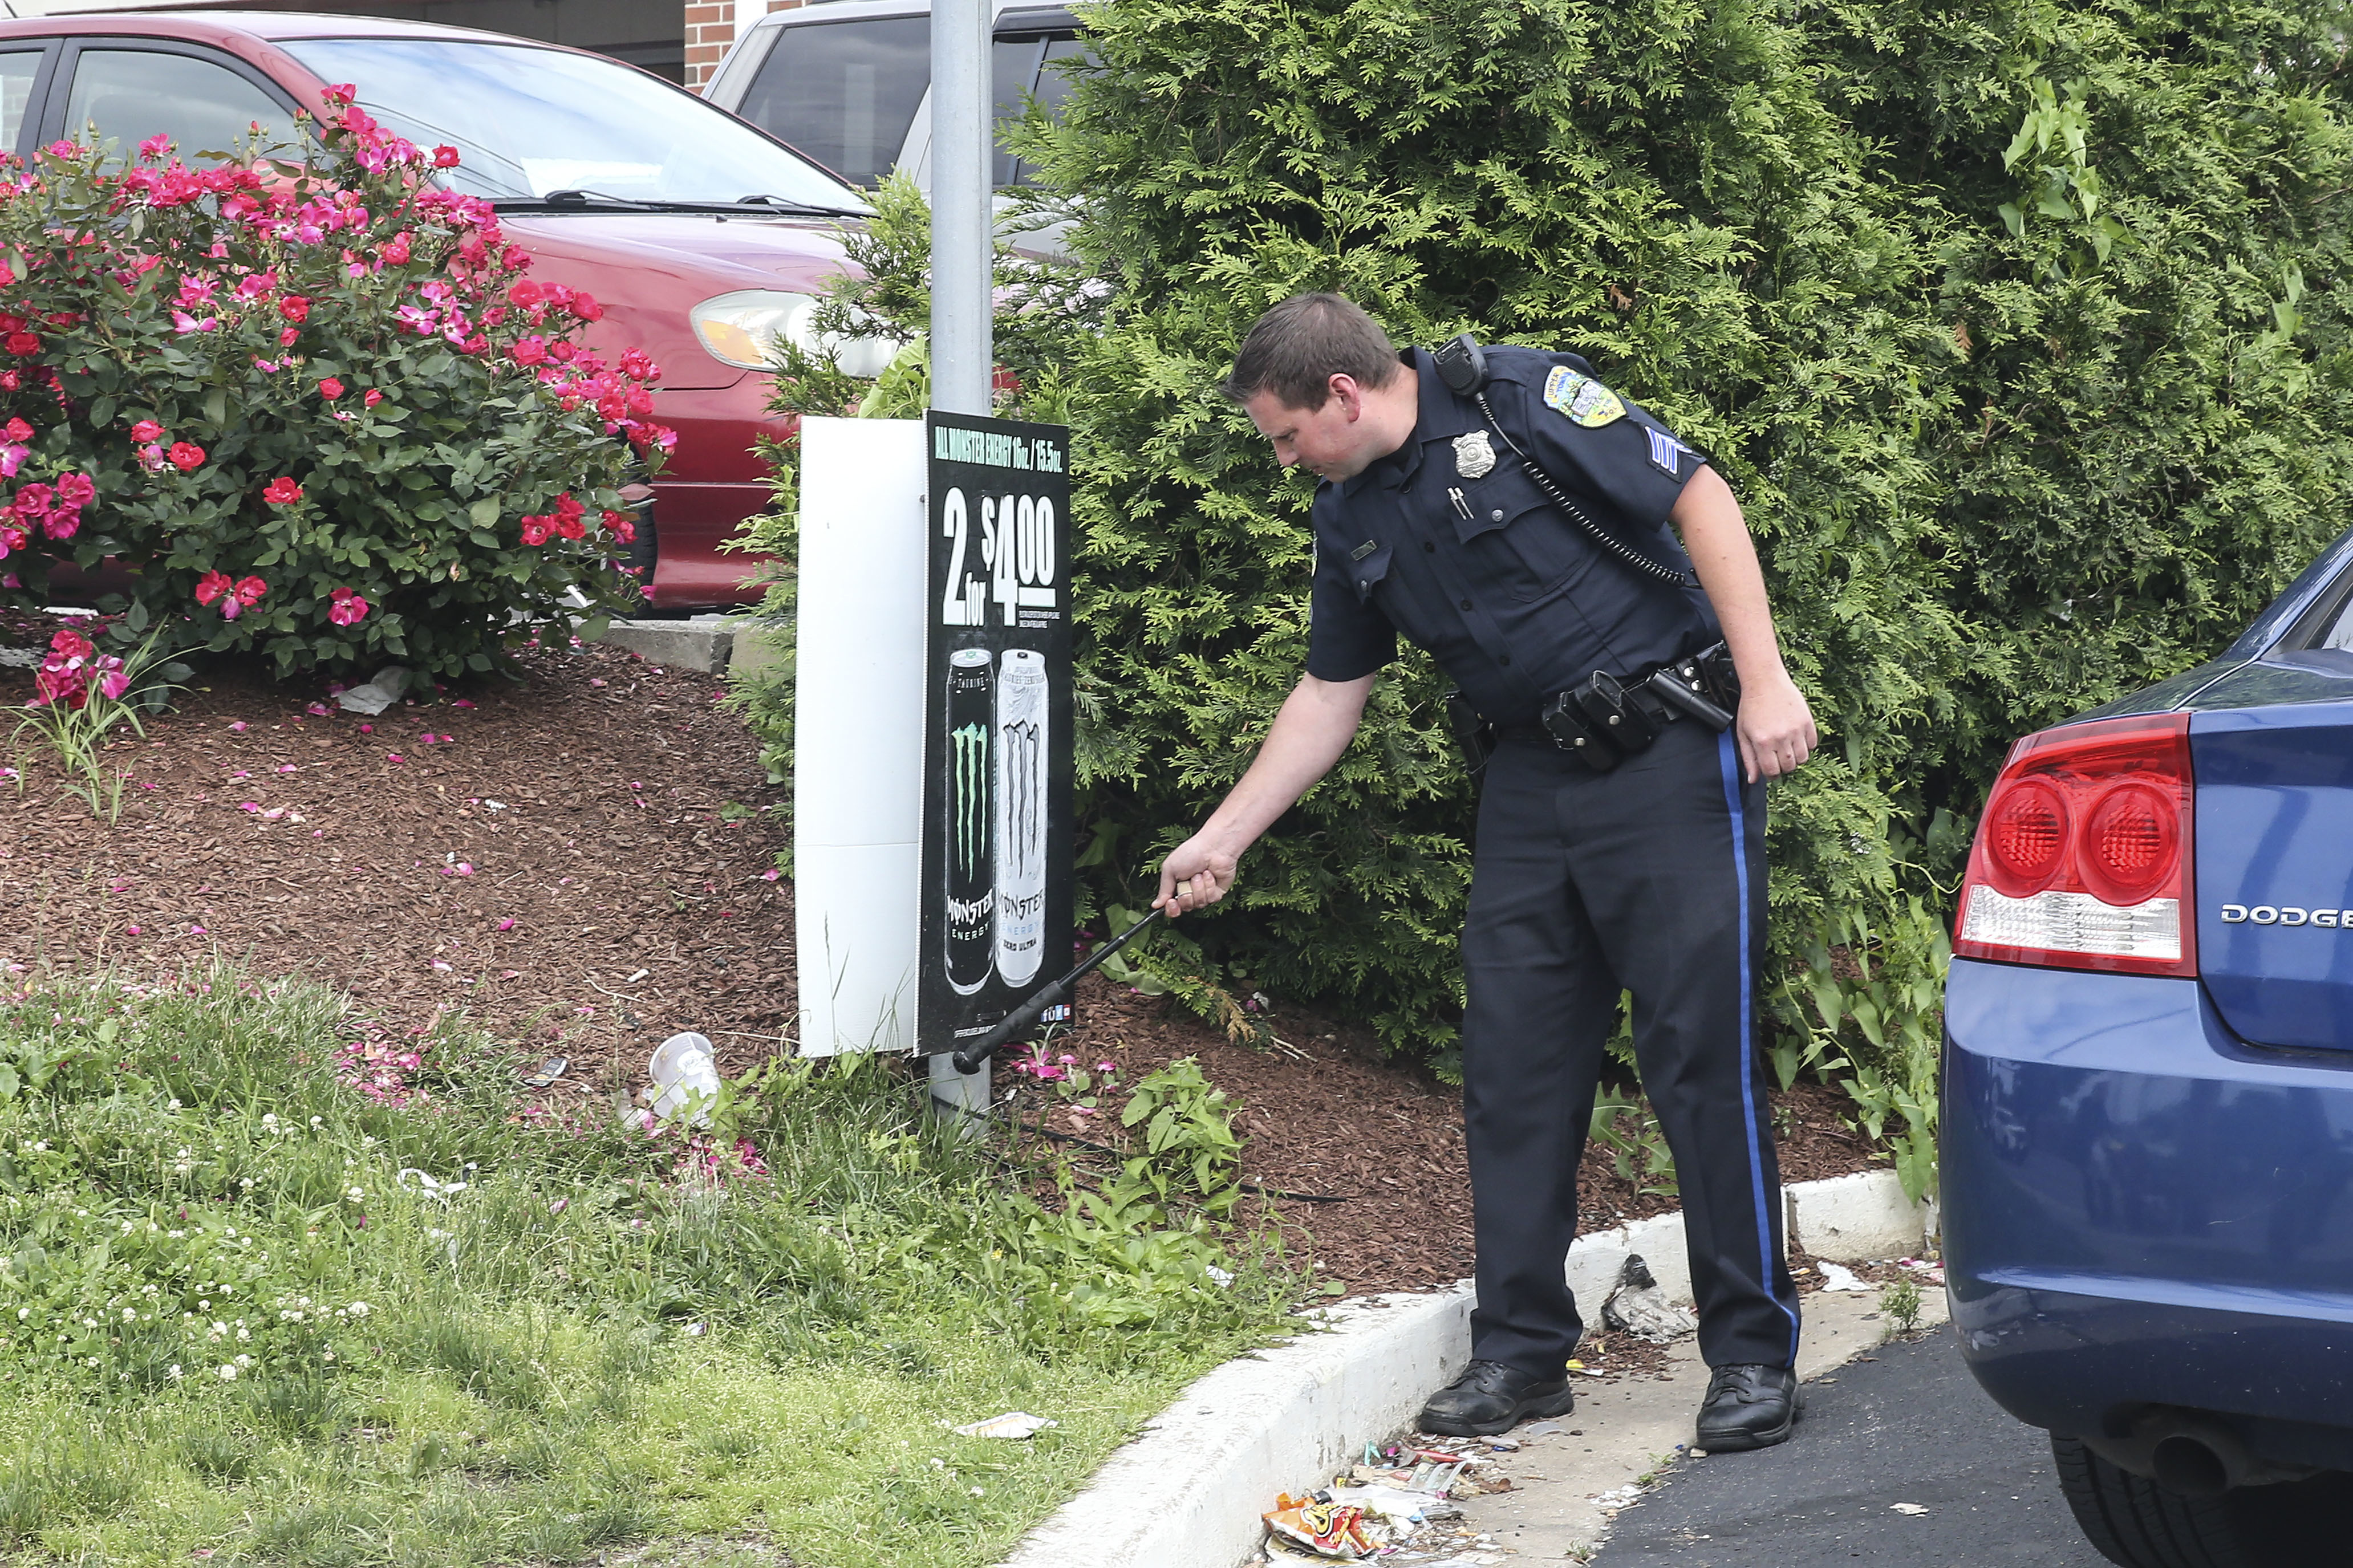 Upper Darby Police search for evidence near a gas station at State and Lansdowne avenue a few blocks from the school on. Monday June 4, 2018.